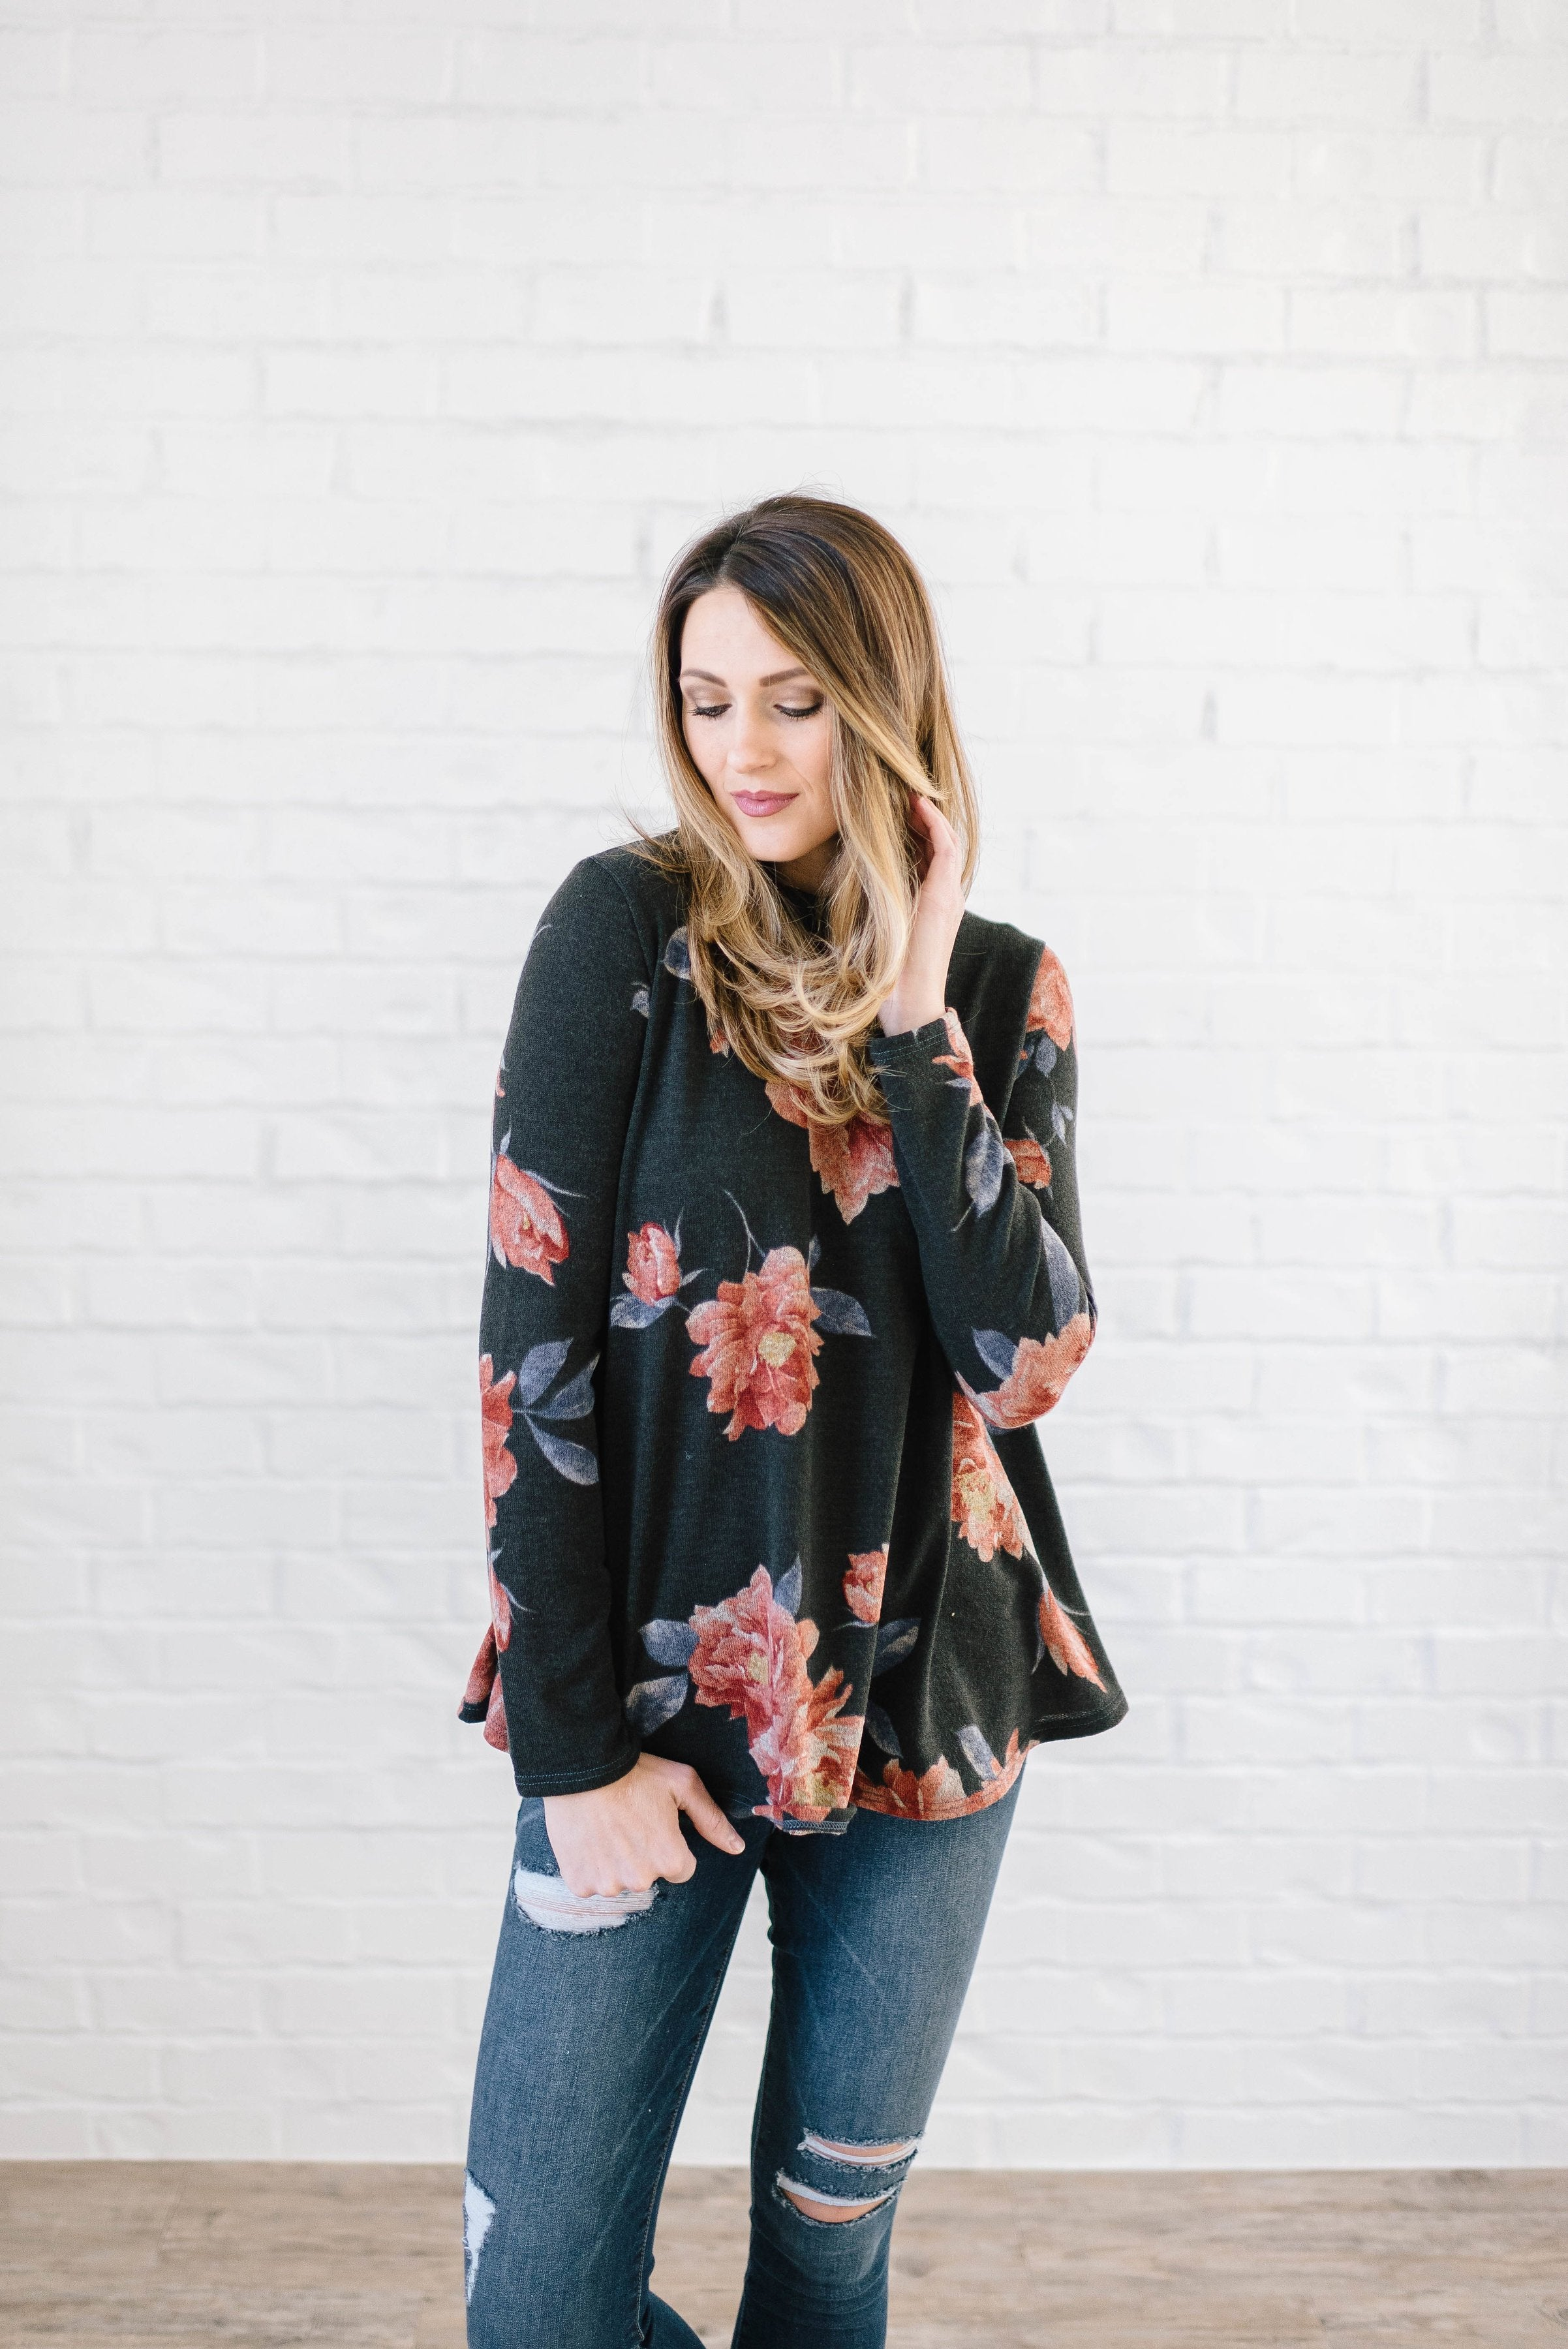 The Peony Knit Top in Charcoal